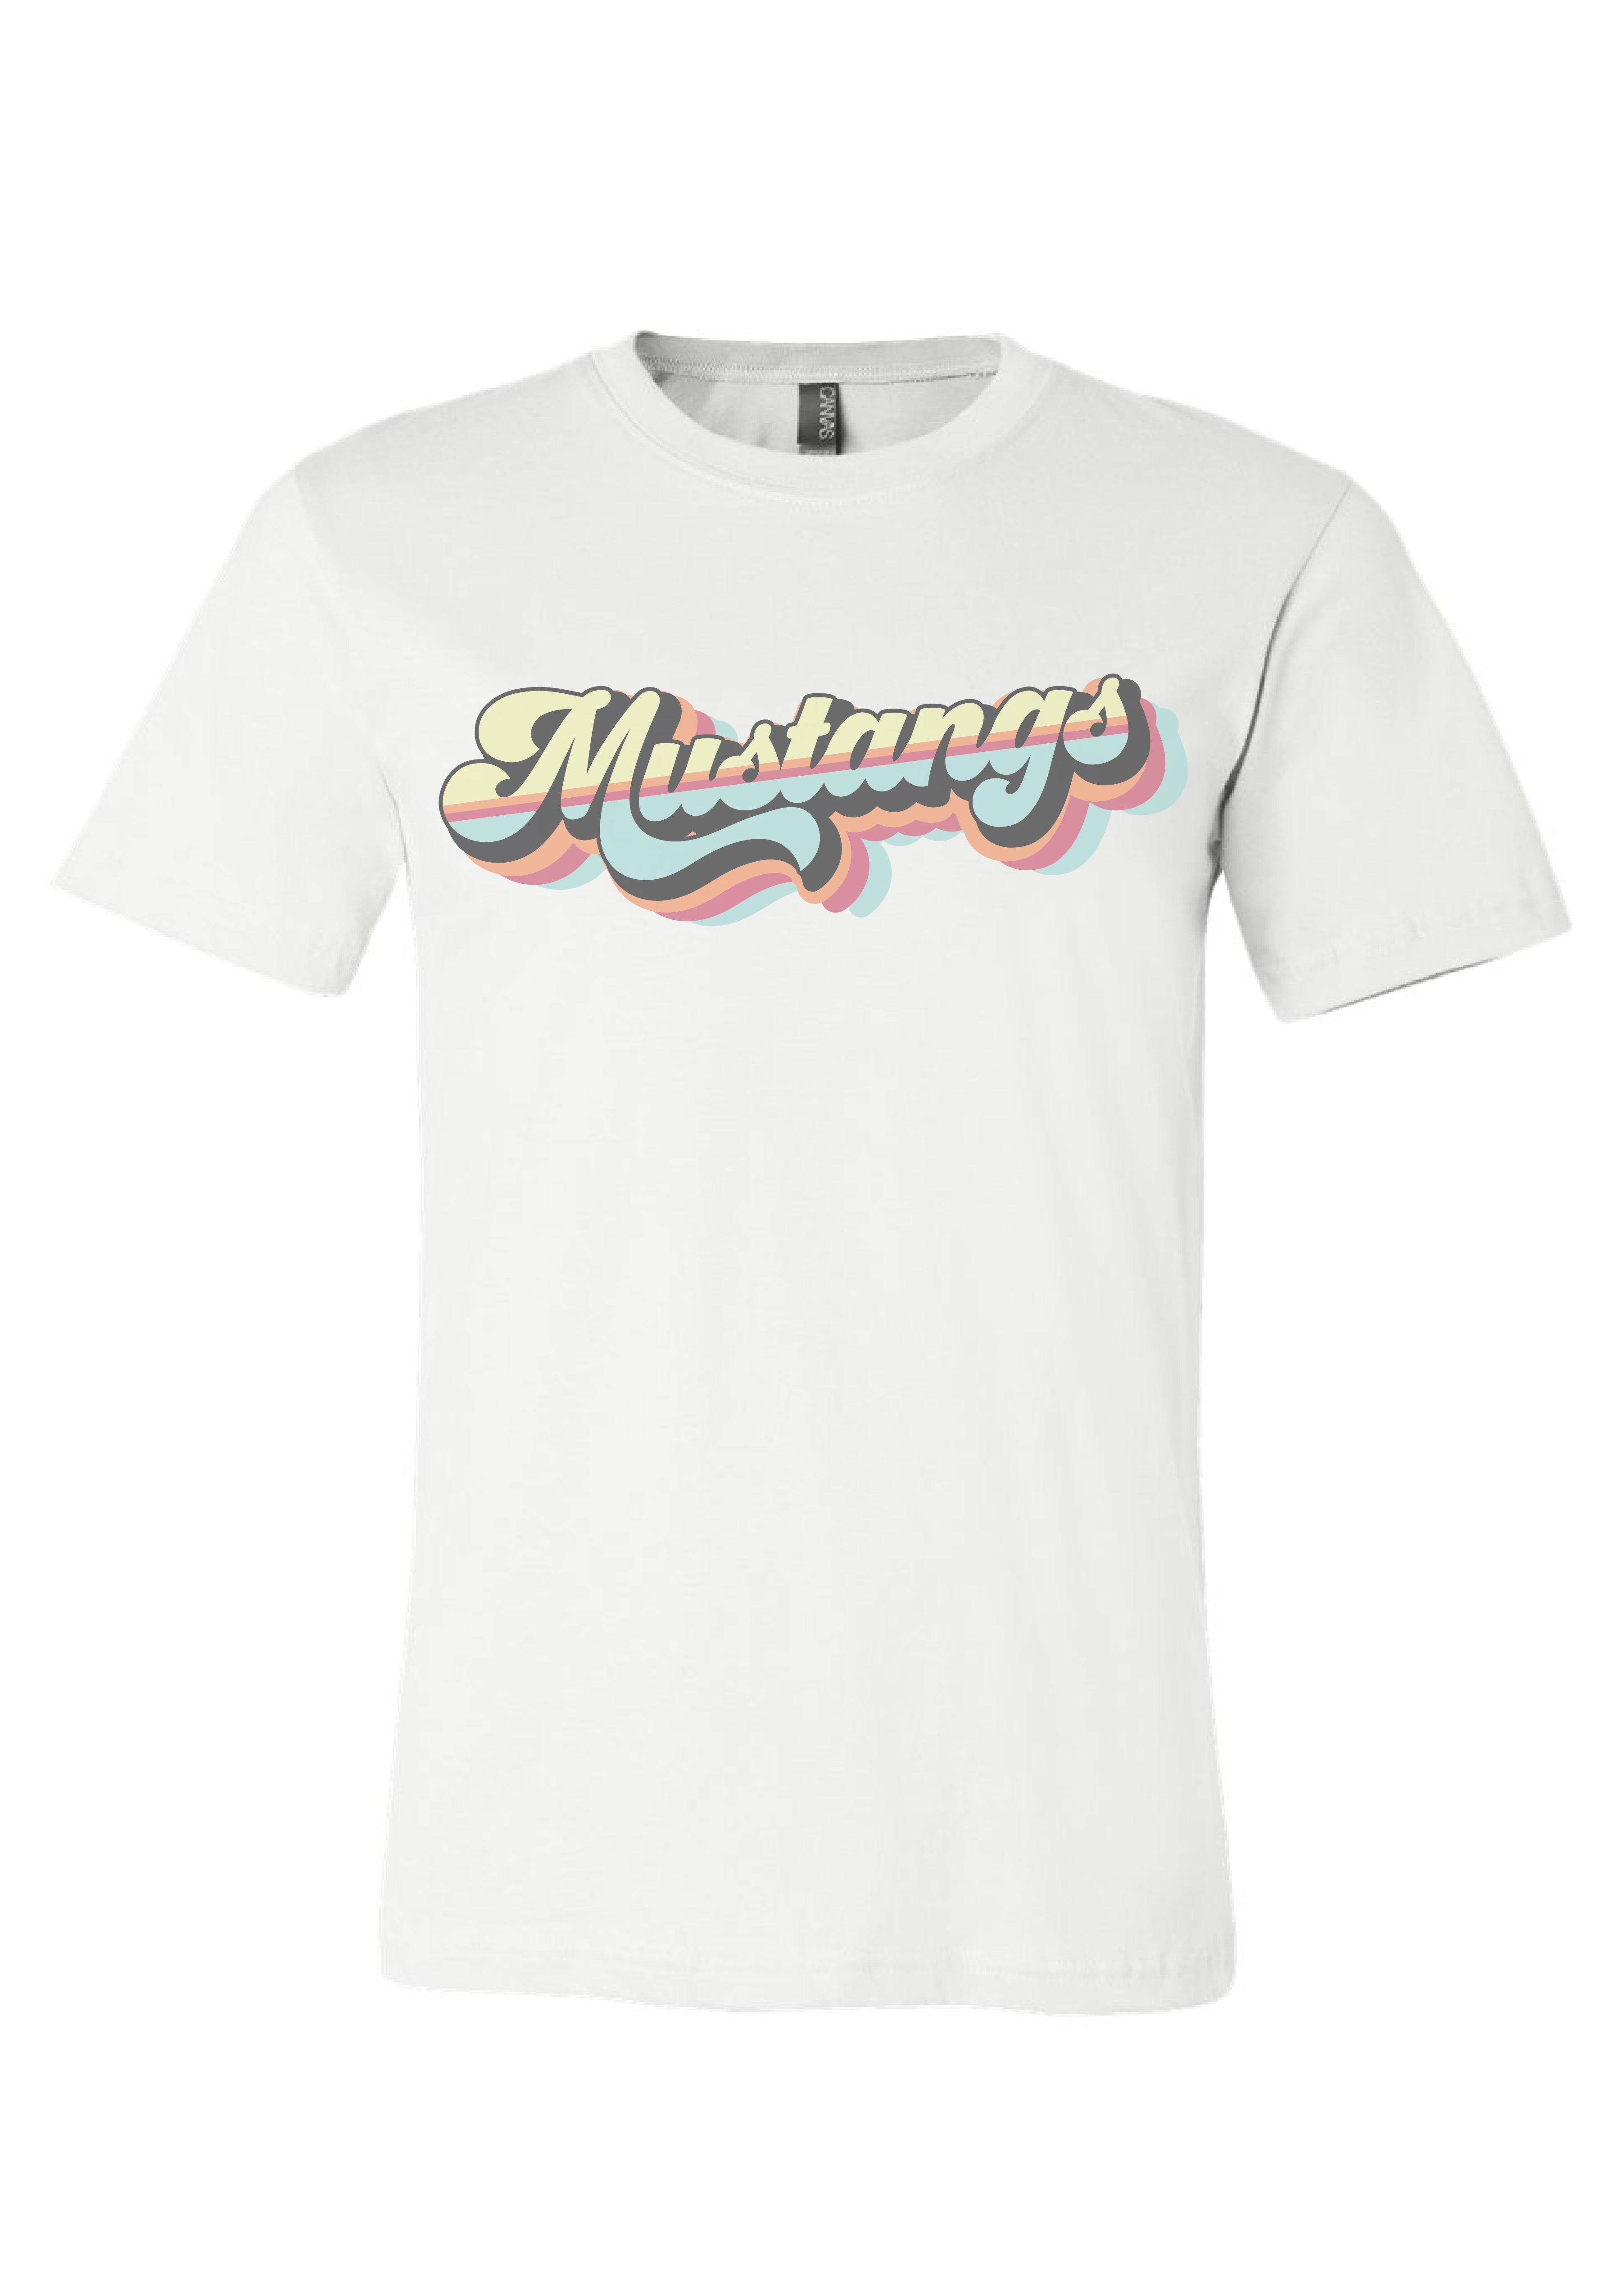 White Retro T-Shirt Mustangs - While supplies last!